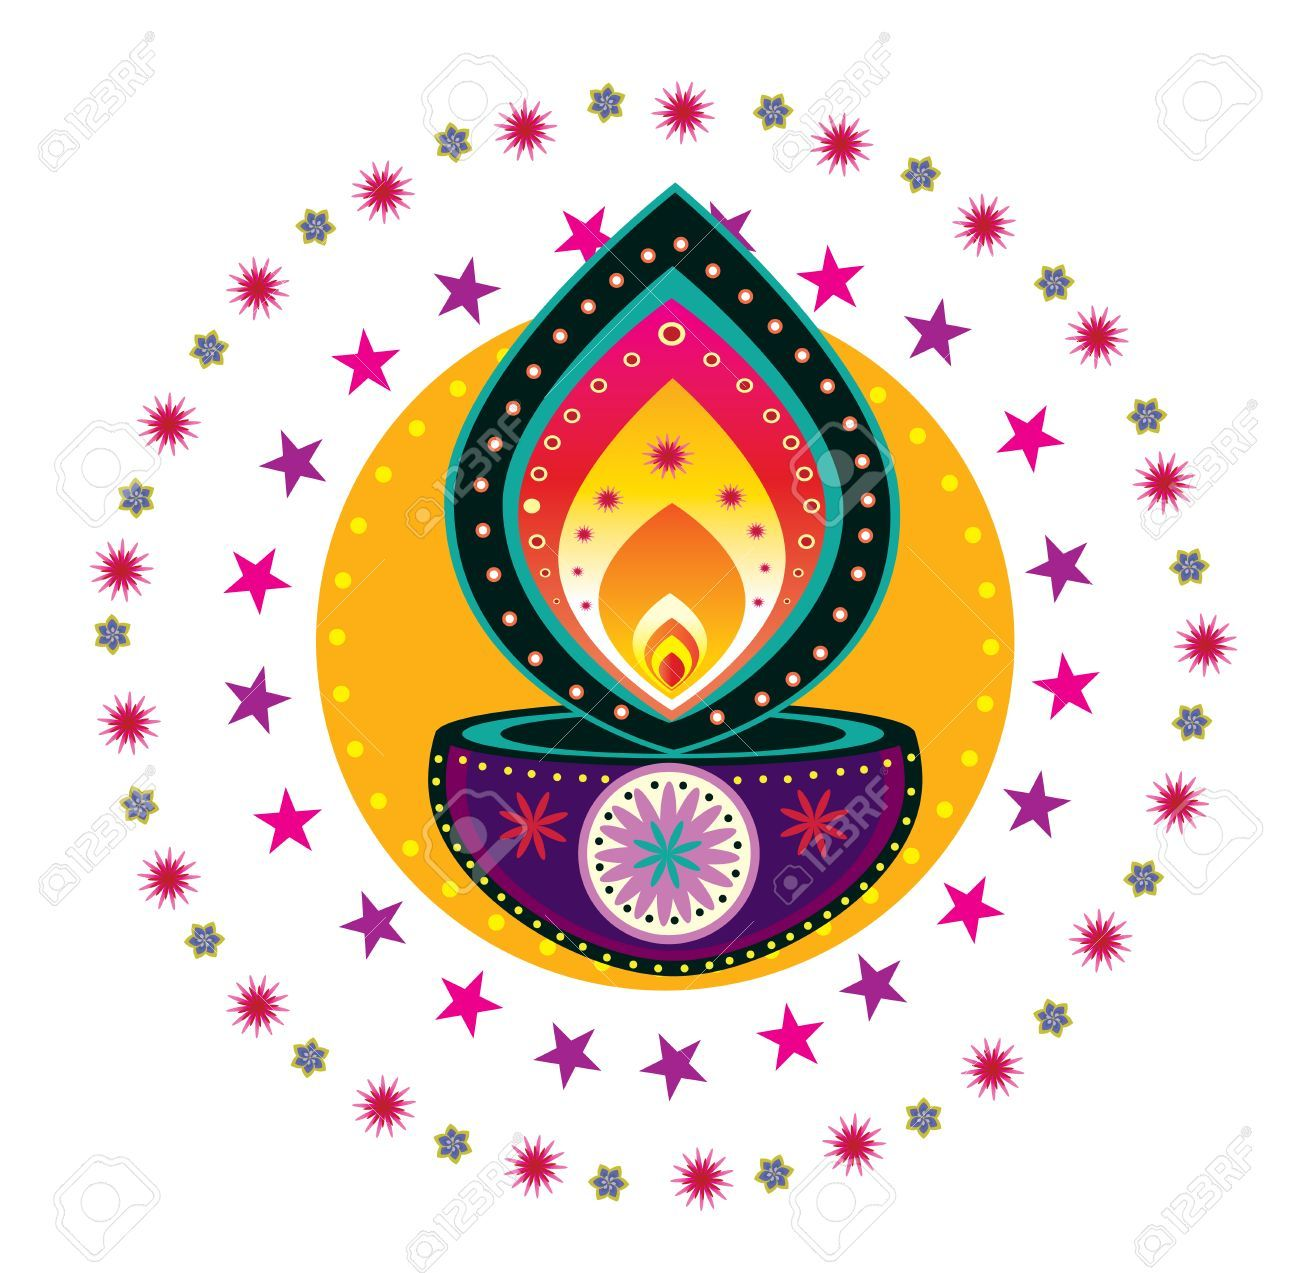 Diwali light clipart graphic library download Diwali light clipart 1 » Clipart Portal graphic library download